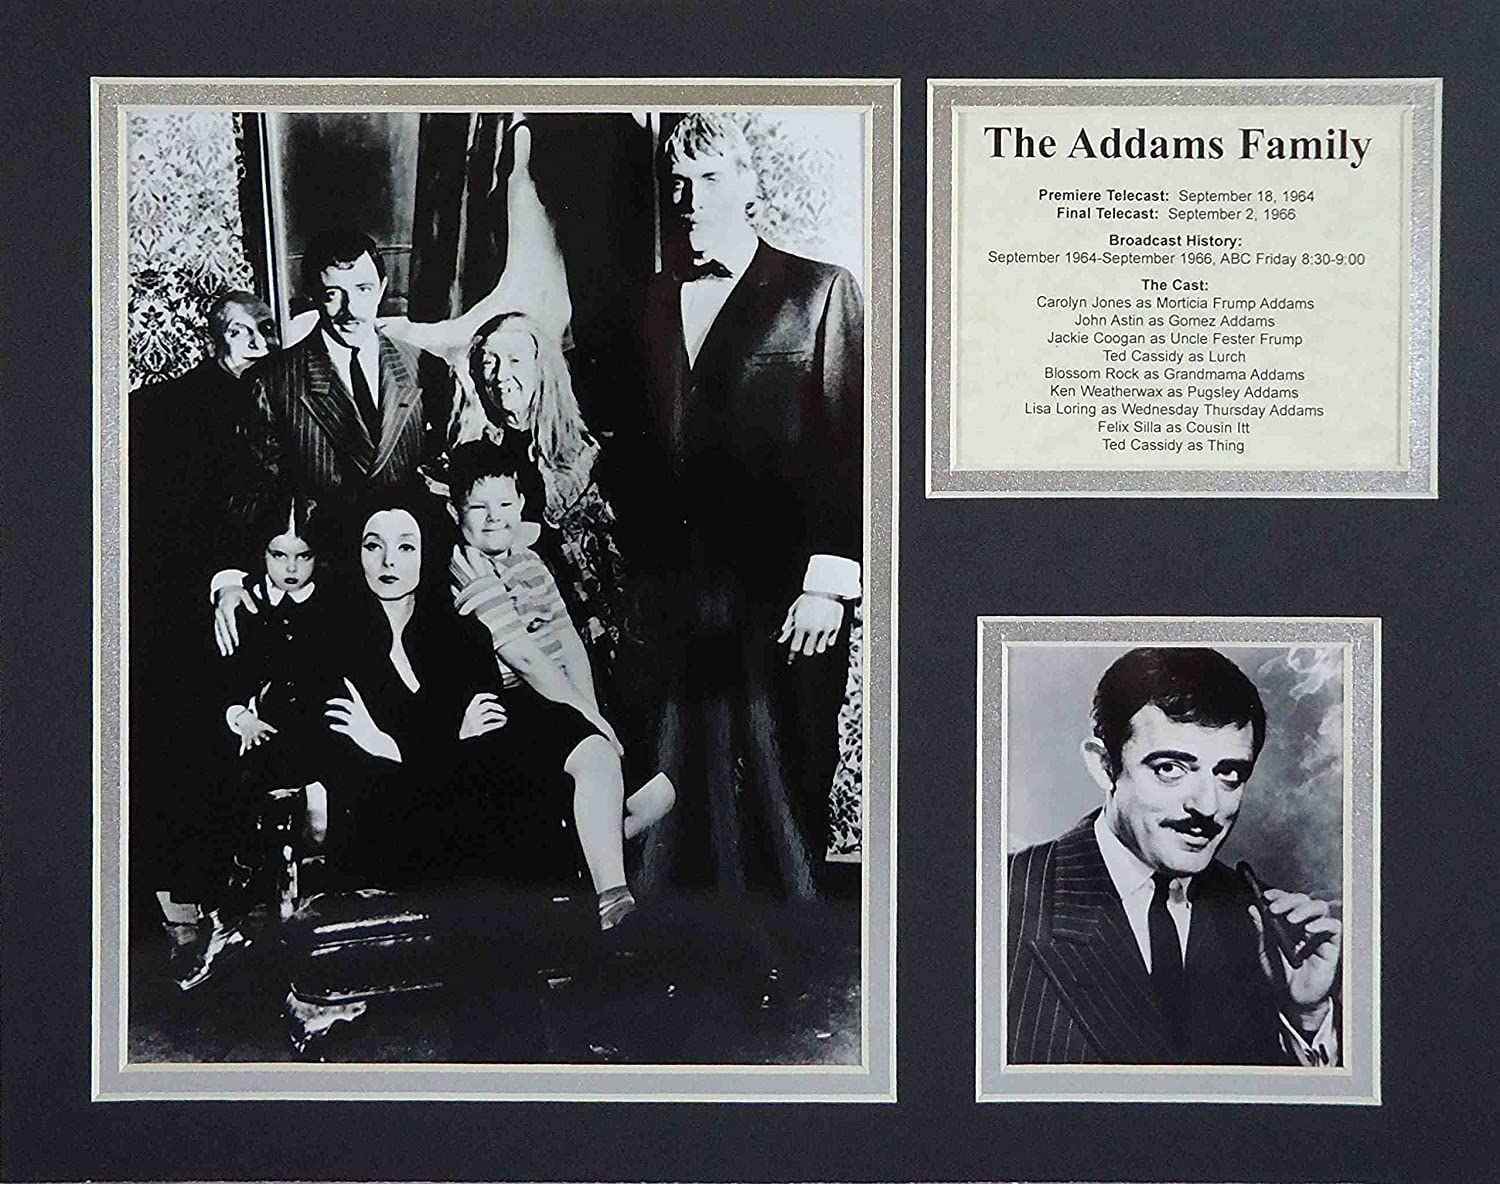 """The Addams Family 11"""" x 14"""" Unframed Matted Photo Collage by Legends Never Die, Inc."""